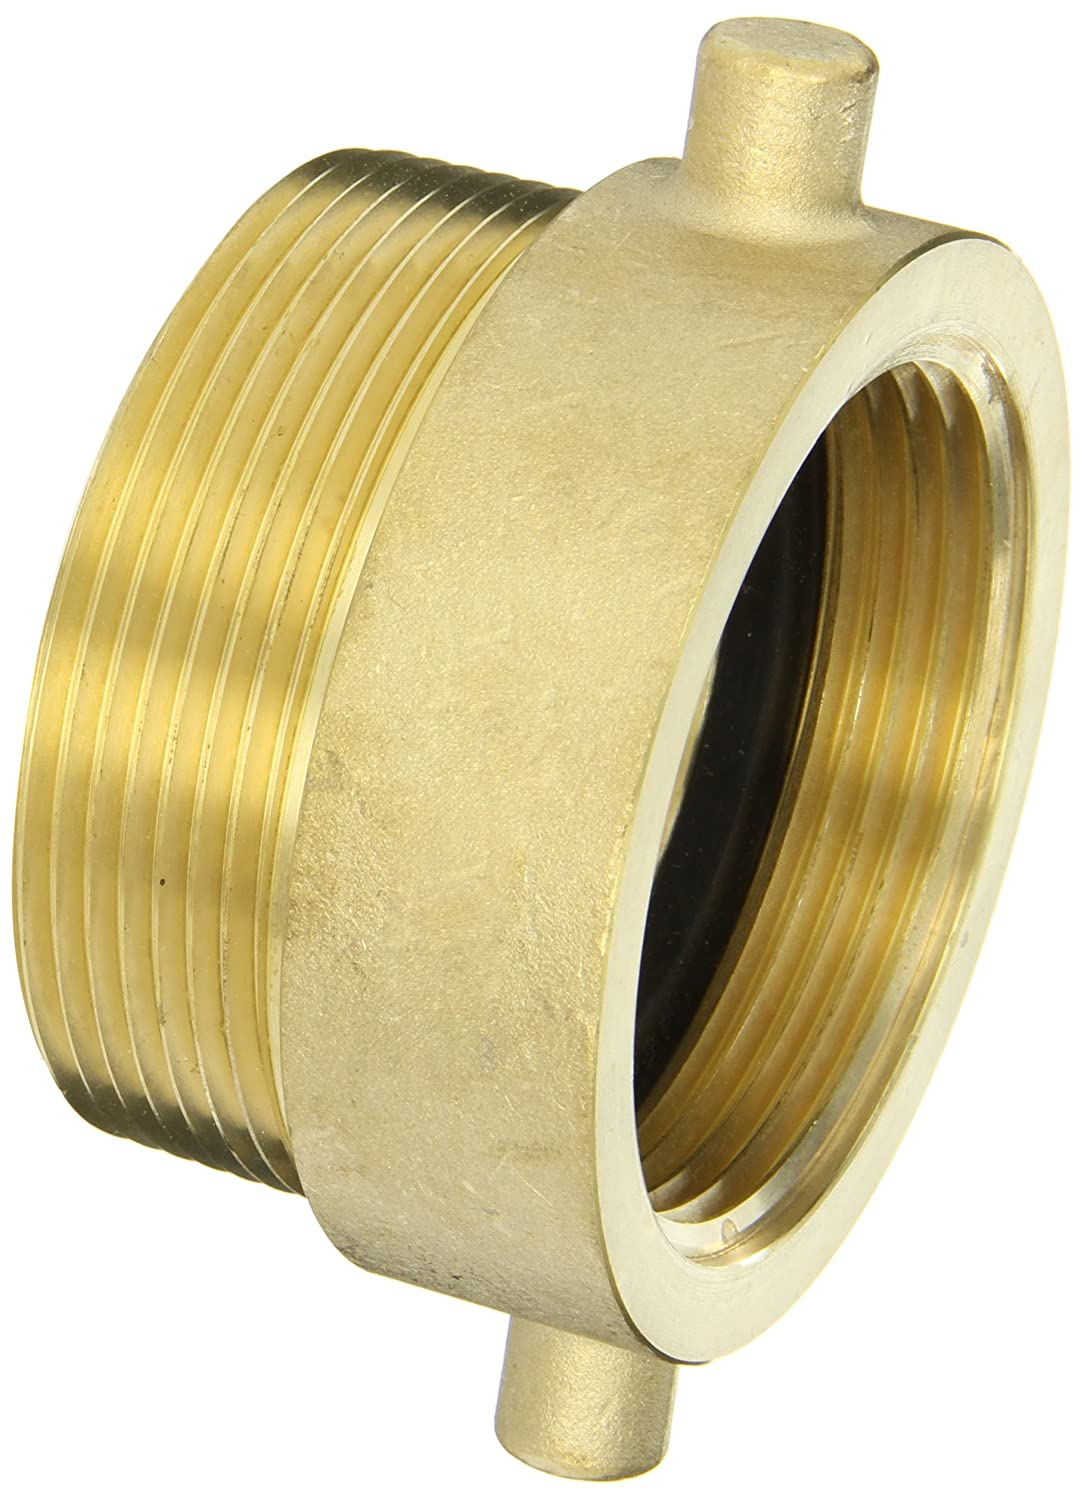 NH Dixon Valve HA2530T Brass Fire Equipment Hydrant Adapter with Pin Lug Female x 3 NPT Male 2-1//2 NST